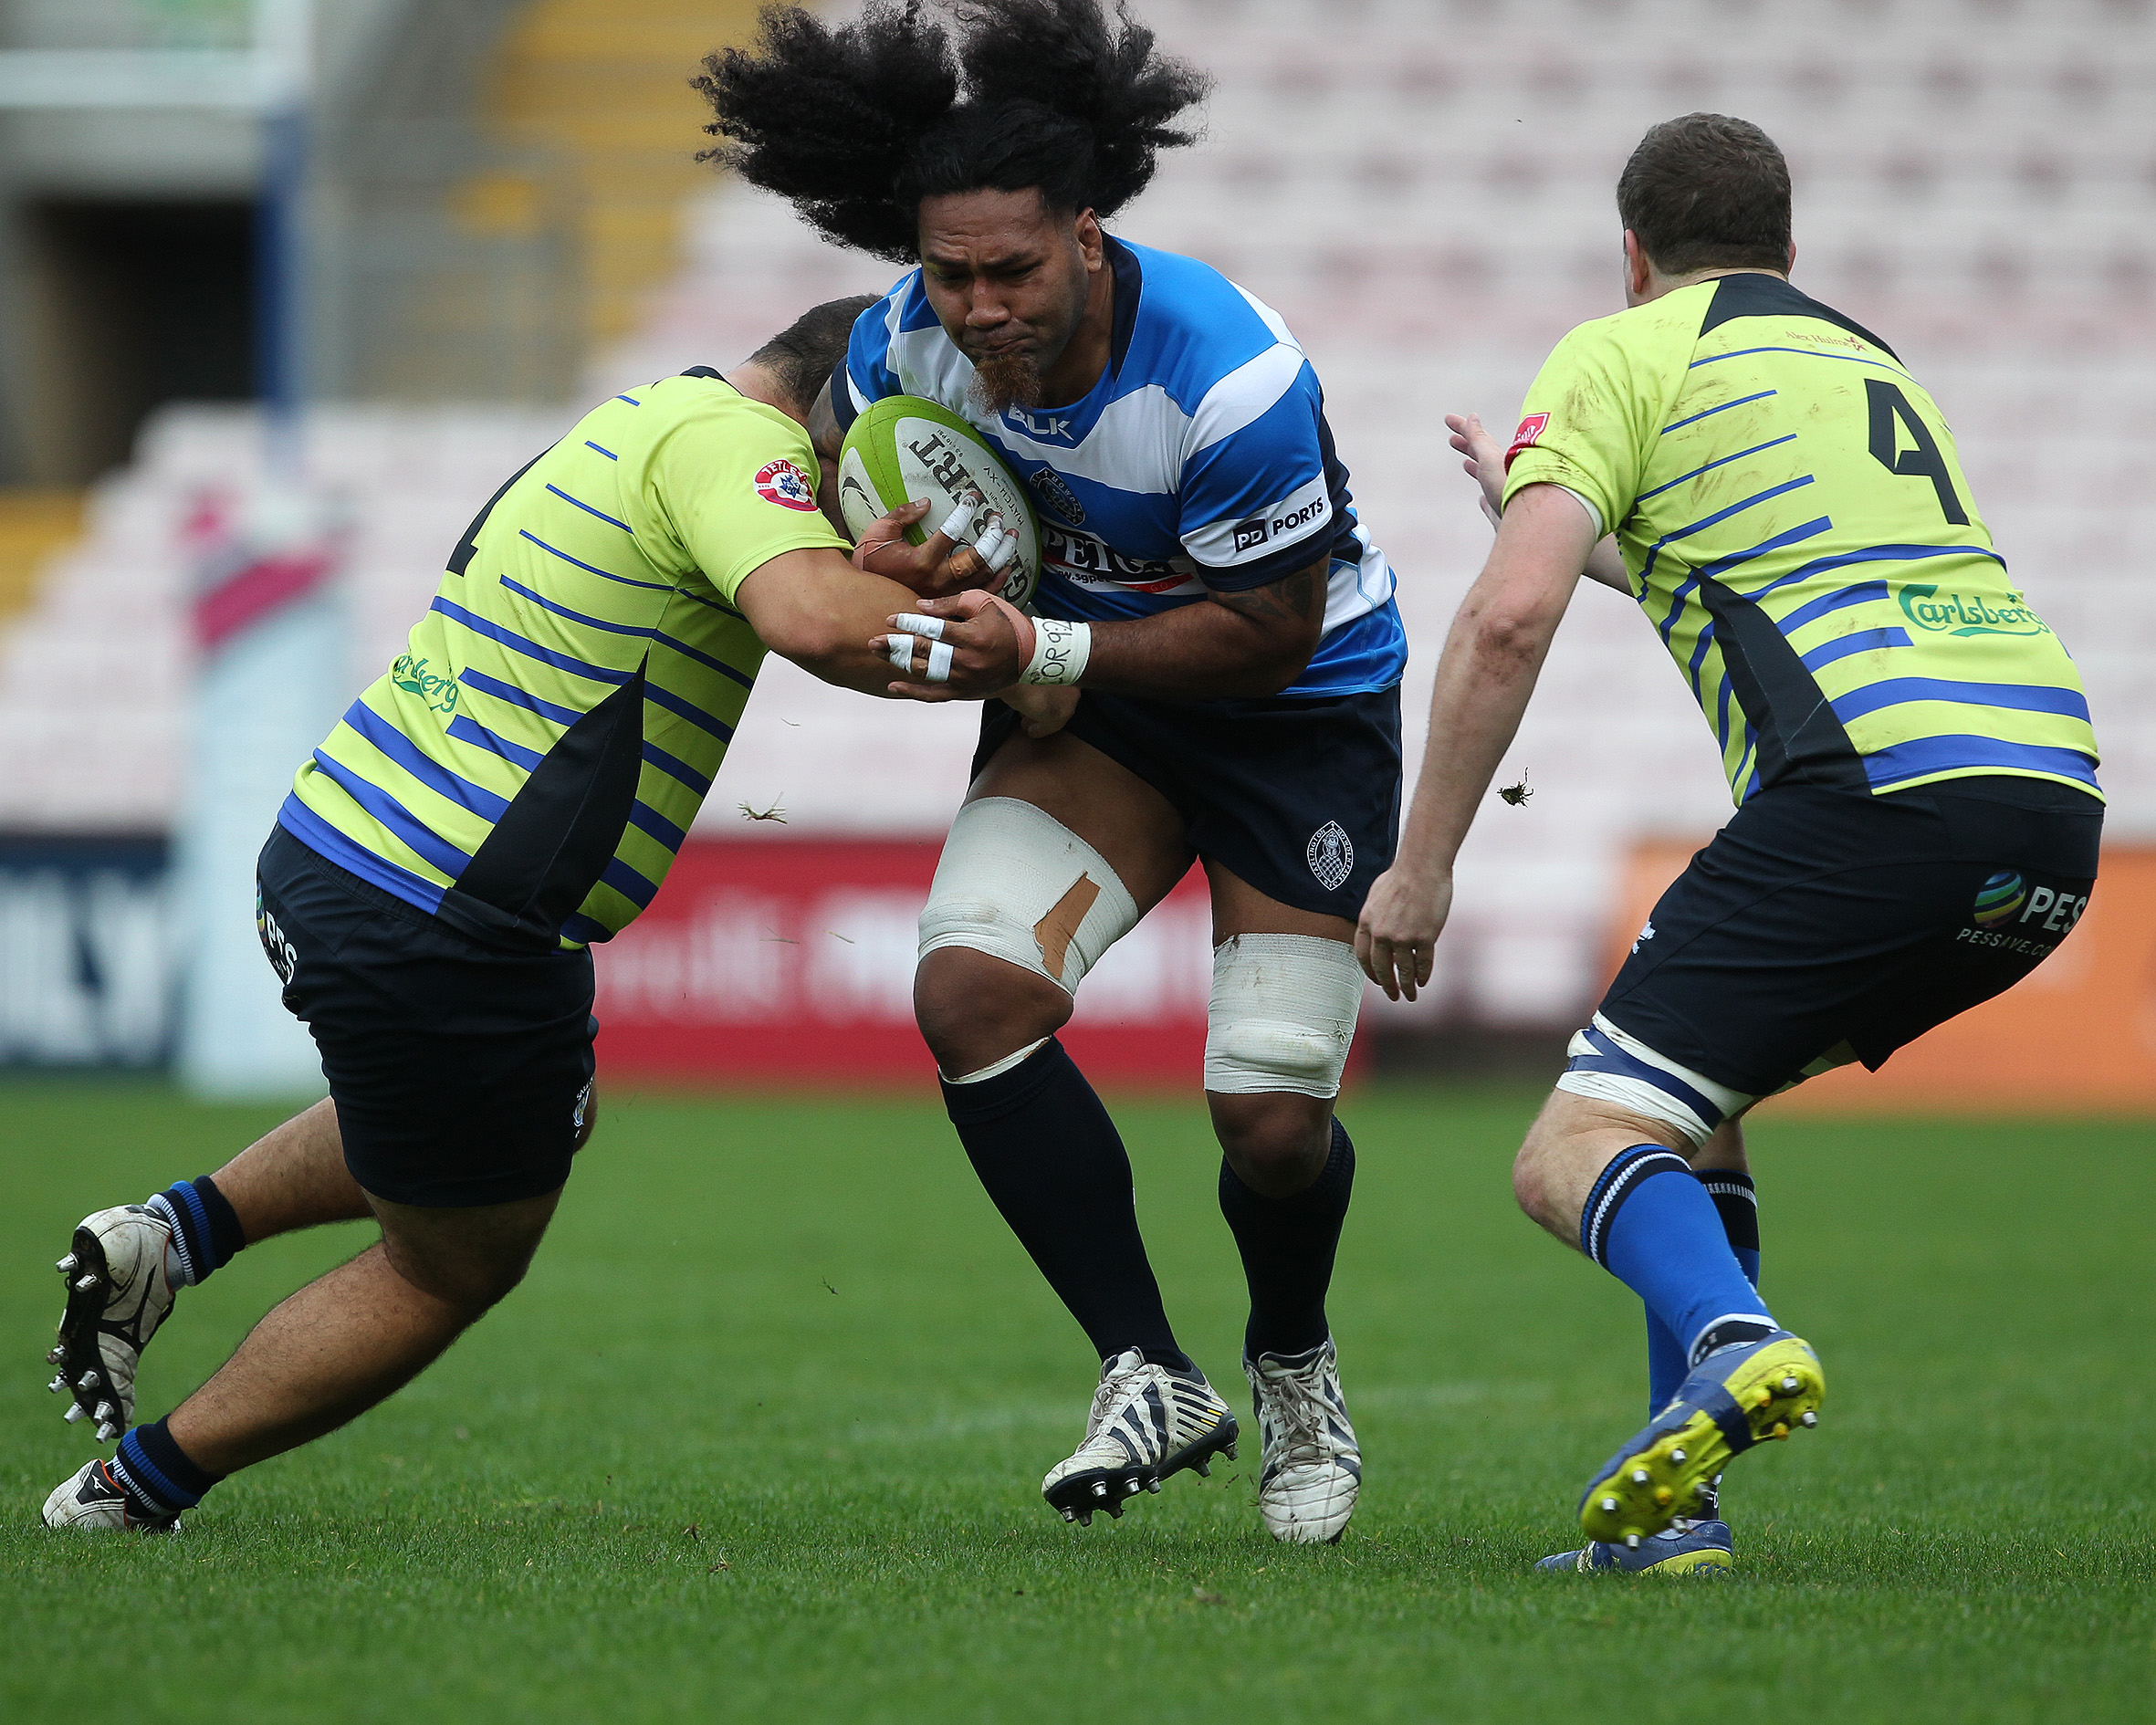 Action from Darlington Mowden Park. Picture: Mark Fletcher | Shutter Press